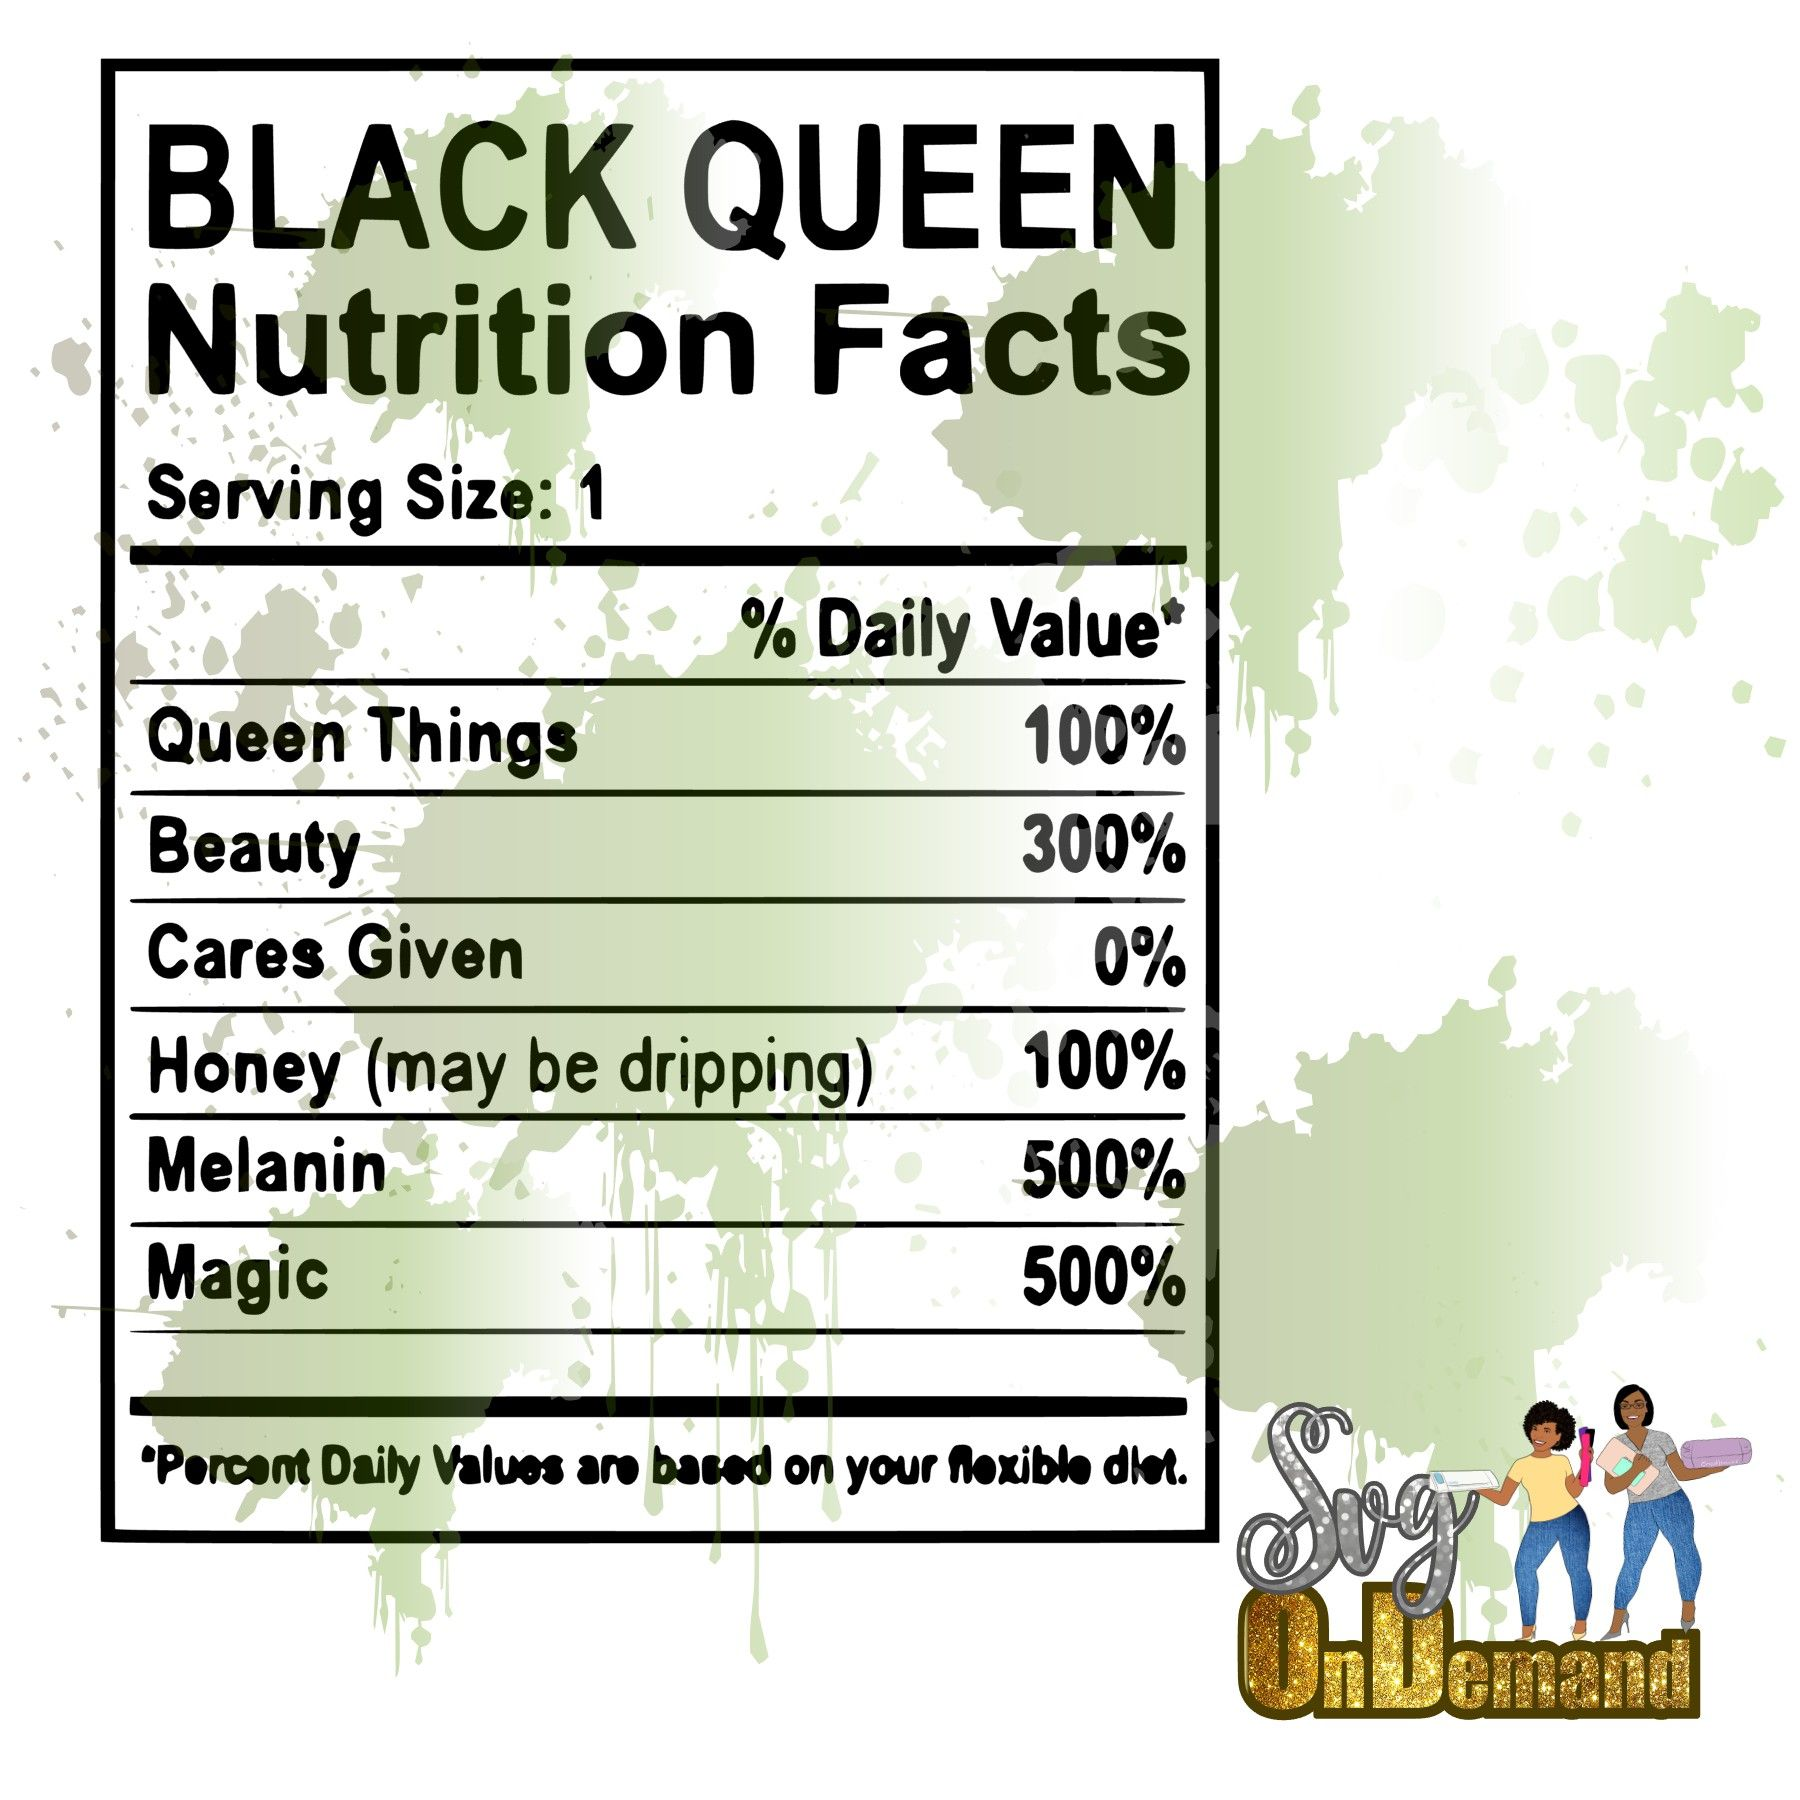 Black Queen Nutrition Facts Nutrition Facts Nutrition Facts Label Facts